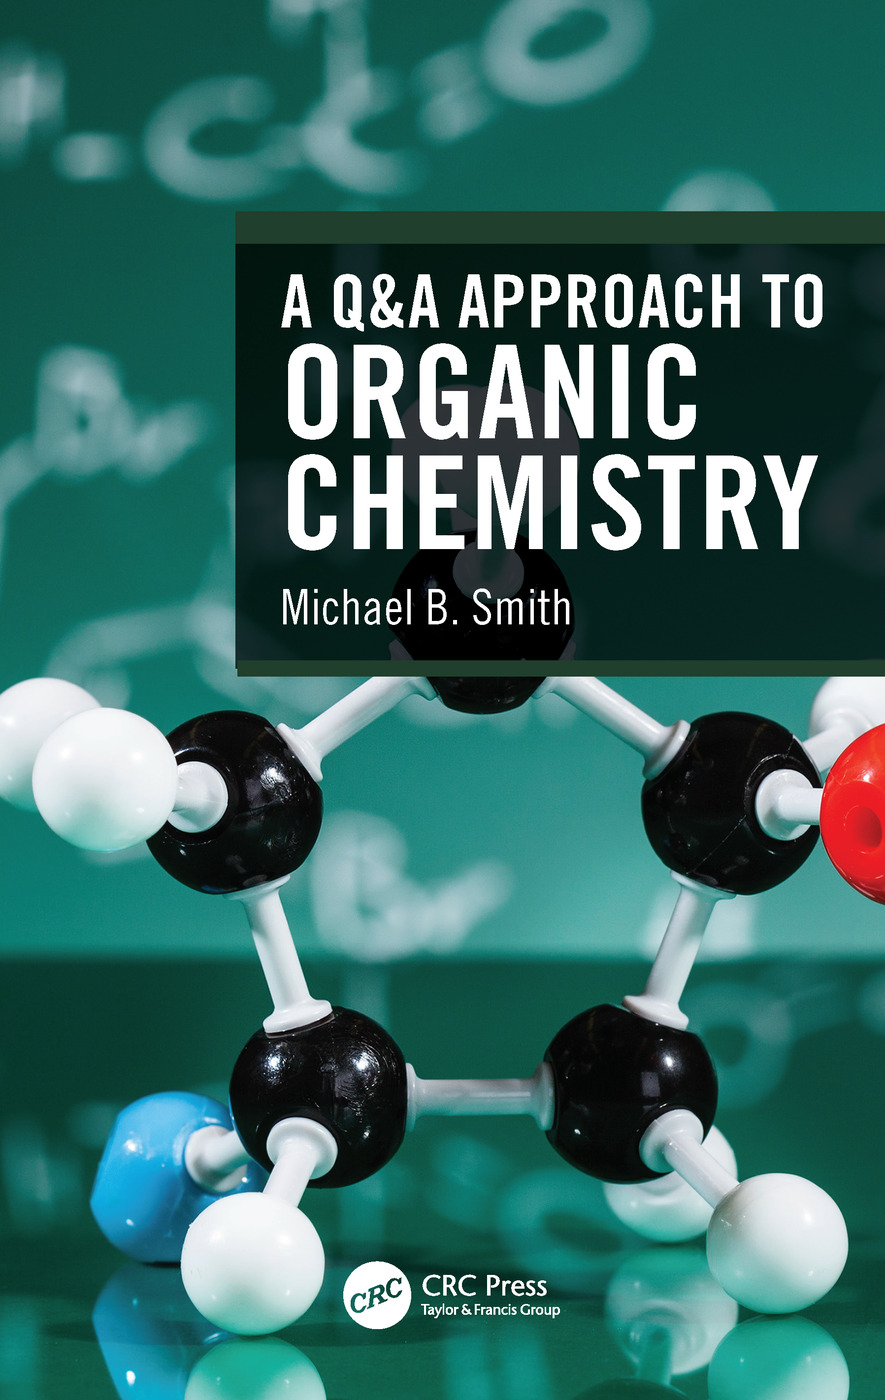 A Q&A Approach to Organic Chemistry book cover